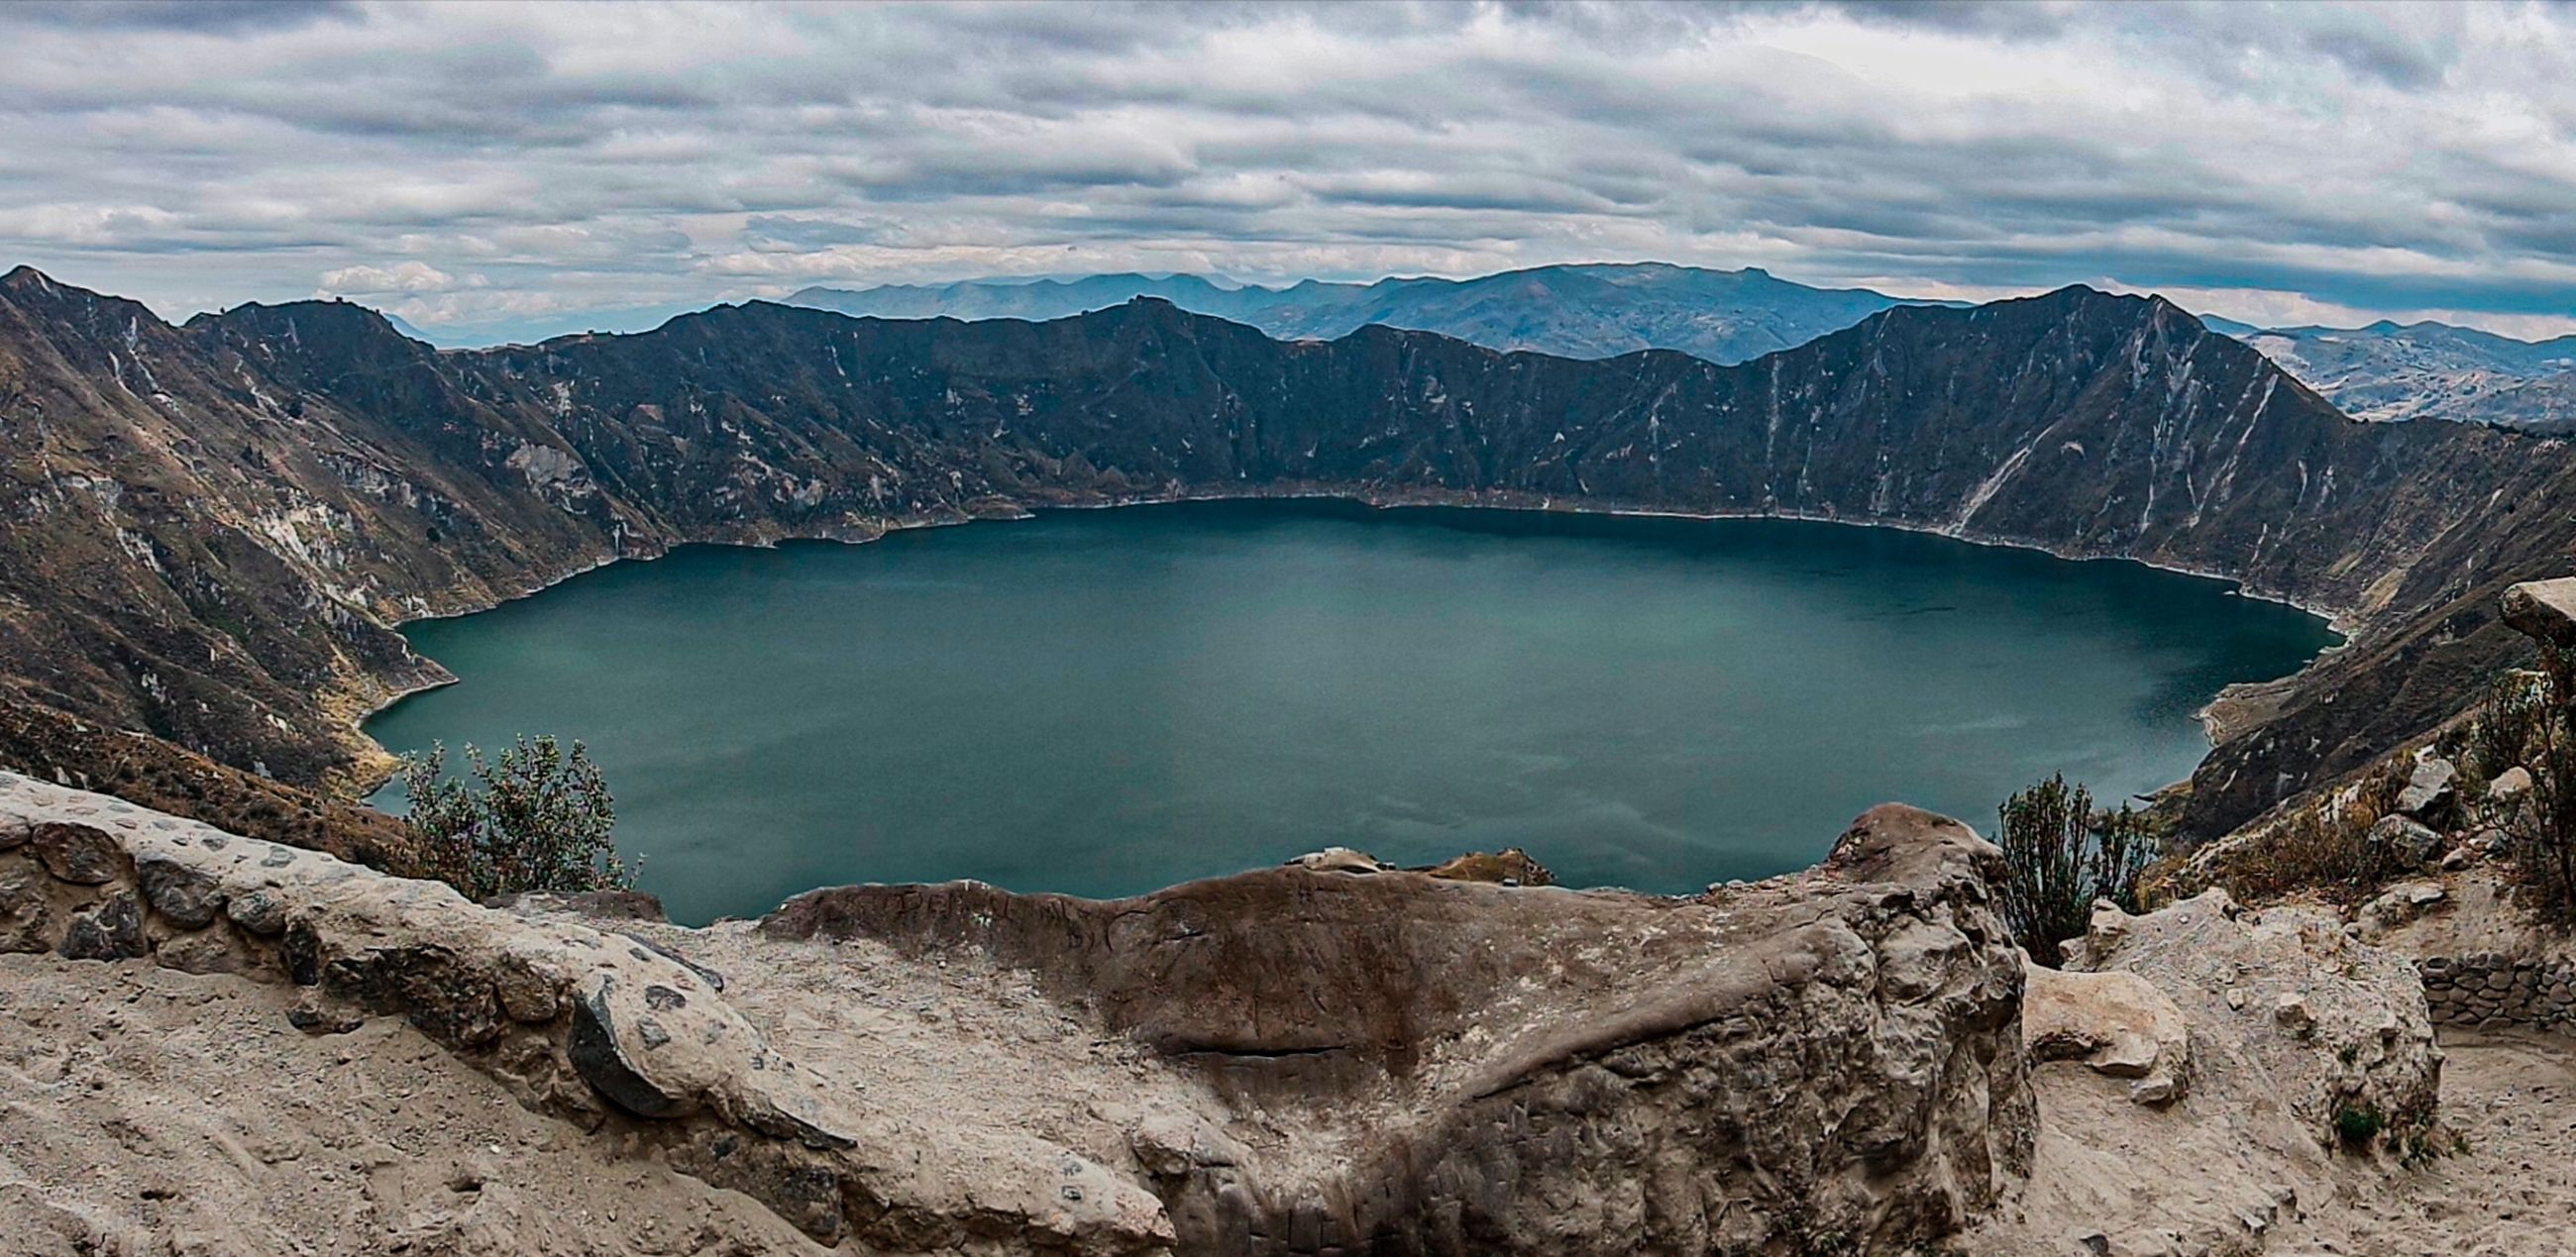 mountain, landscape, environment, water, scenics - nature, crater lake, lake, wilderness, cloud, nature, beauty in nature, sky, travel destinations, land, travel, mountain range, geology, volcano, no people, volcanic crater, tourism, reservoir, outdoors, activity, non-urban scene, panoramic, tranquility, reflection, rock, high angle view, blue, day, tranquil scene, social issues, leisure activity, ridge